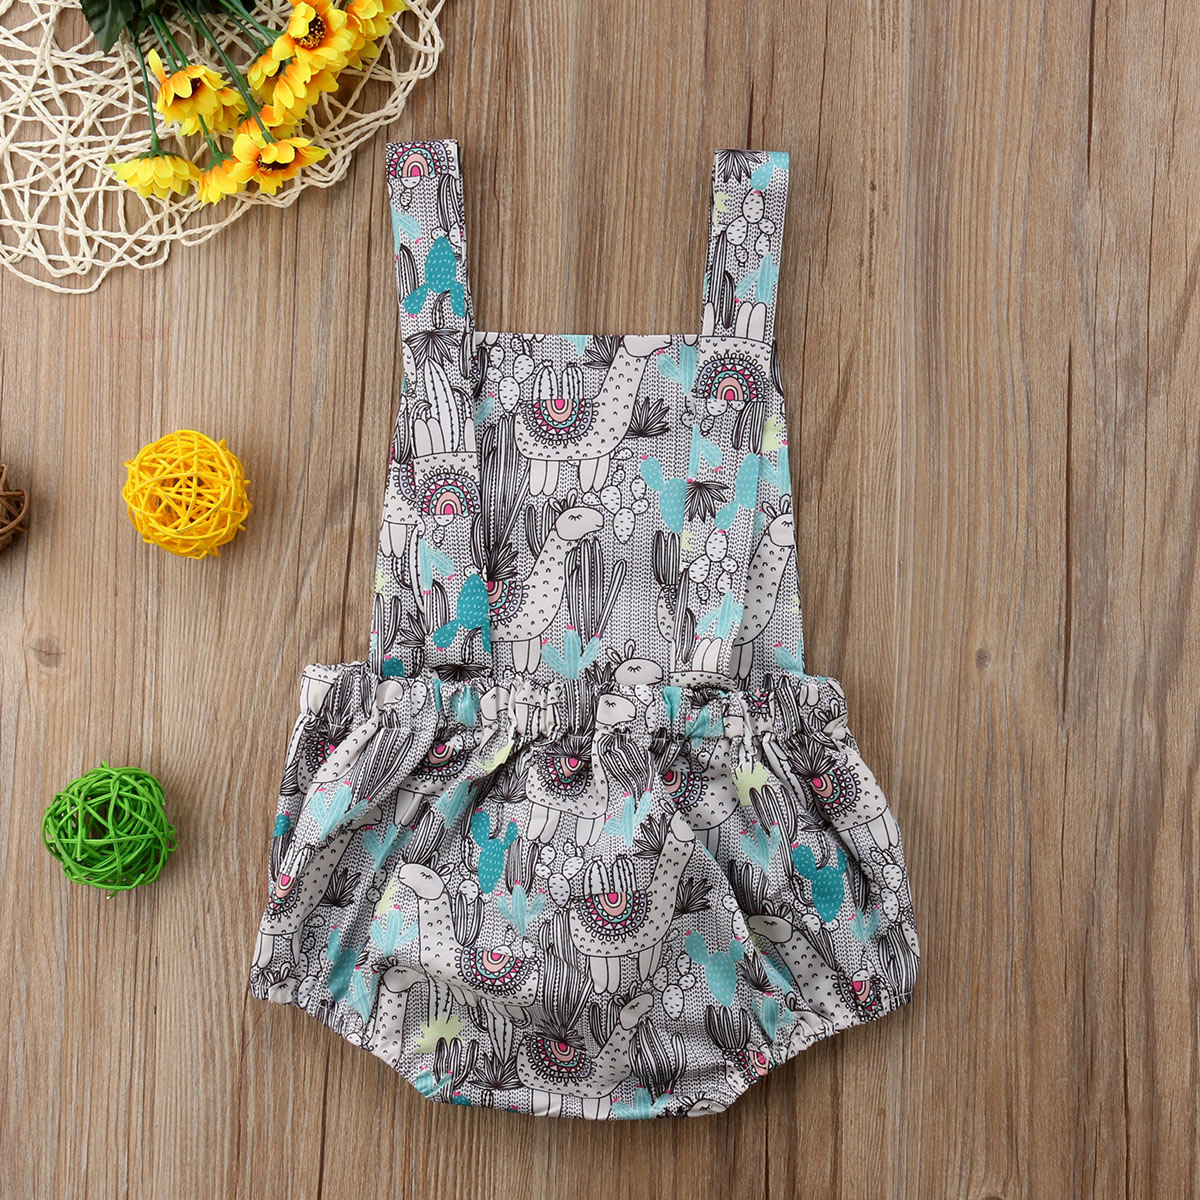 9af6a0399c1 Newborn Baby Girls Boy Sheep Cactus Romper Summer Clothes Outfit Baby  Clothing-in Rompers from Mother   Kids on Aliexpress.com